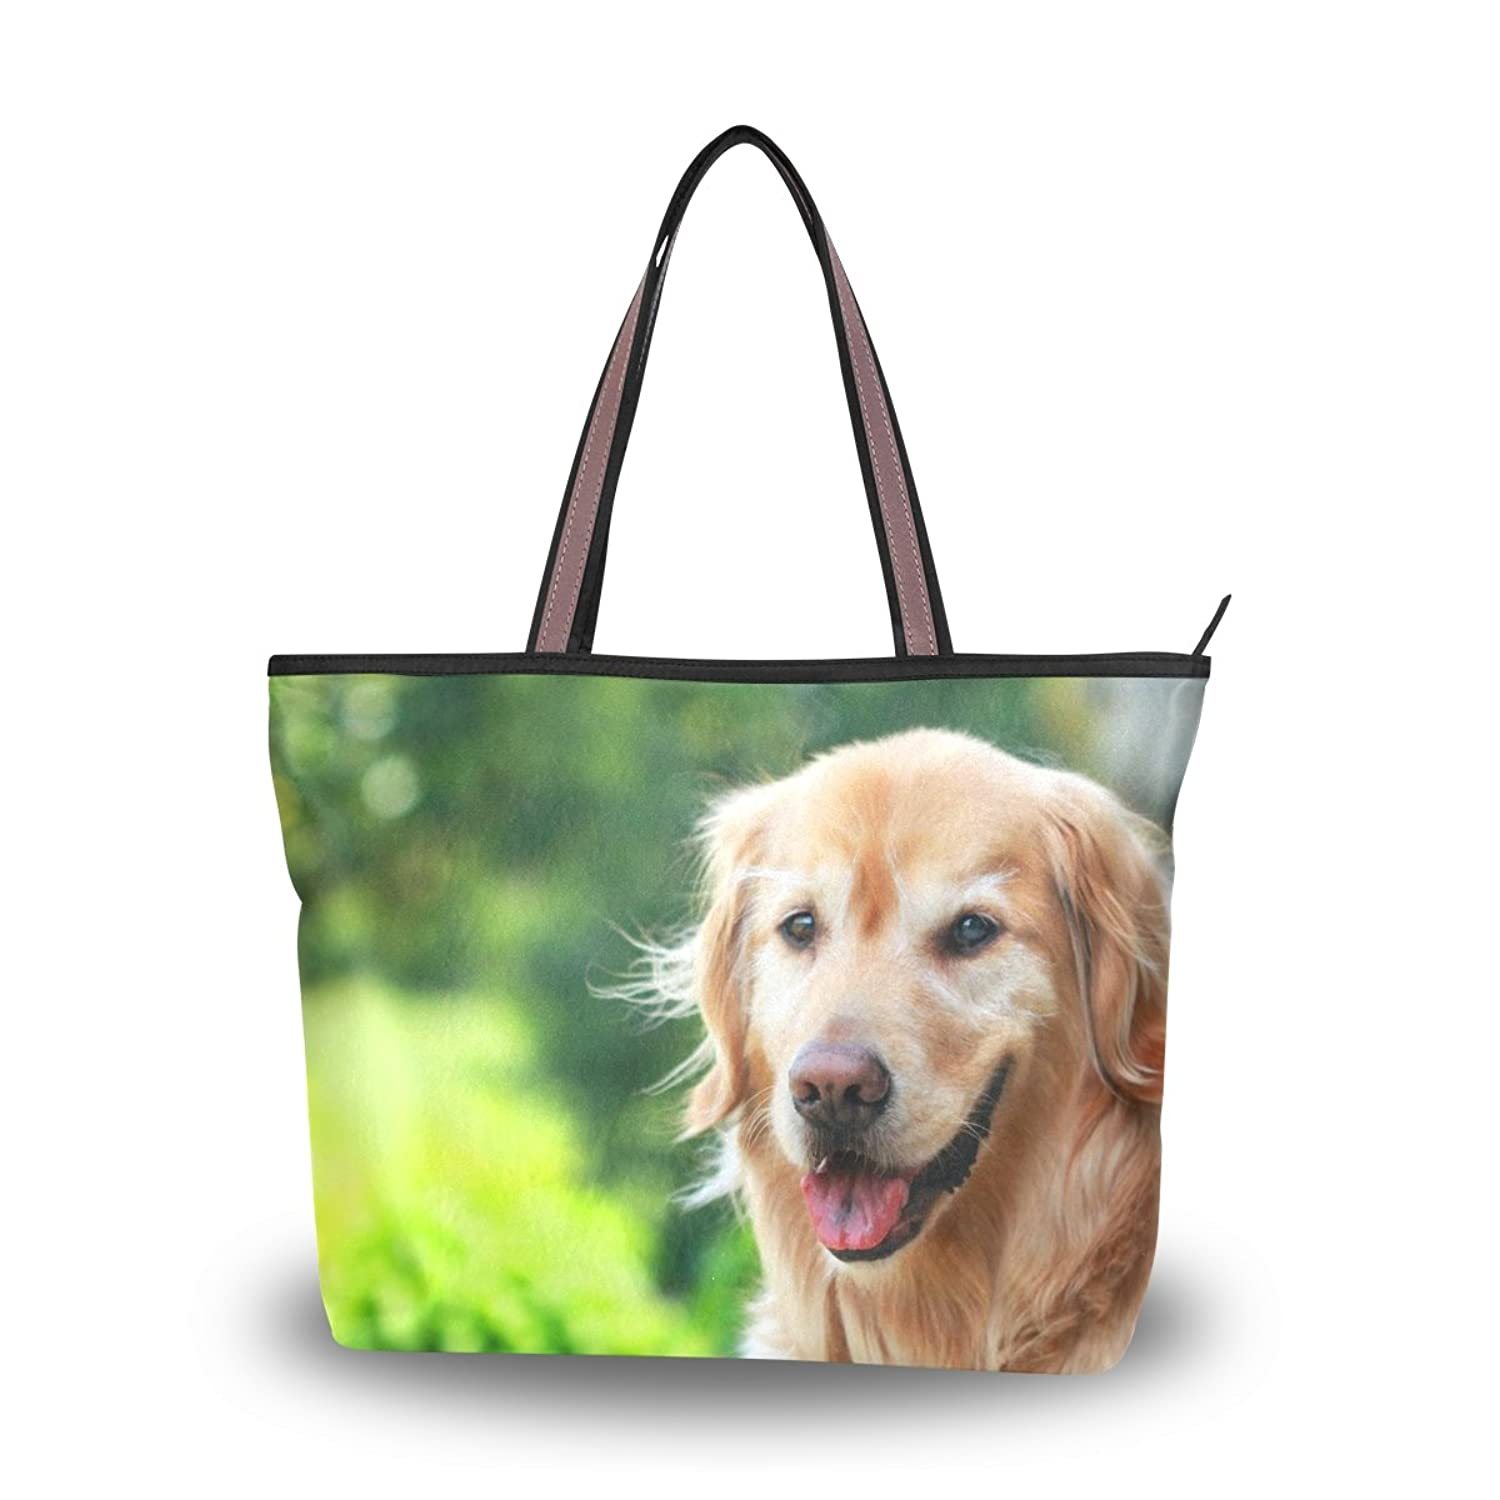 INGBAGS Fashion Large Tote Shoulder Bag Dog Pattern Women Ladies Handbag